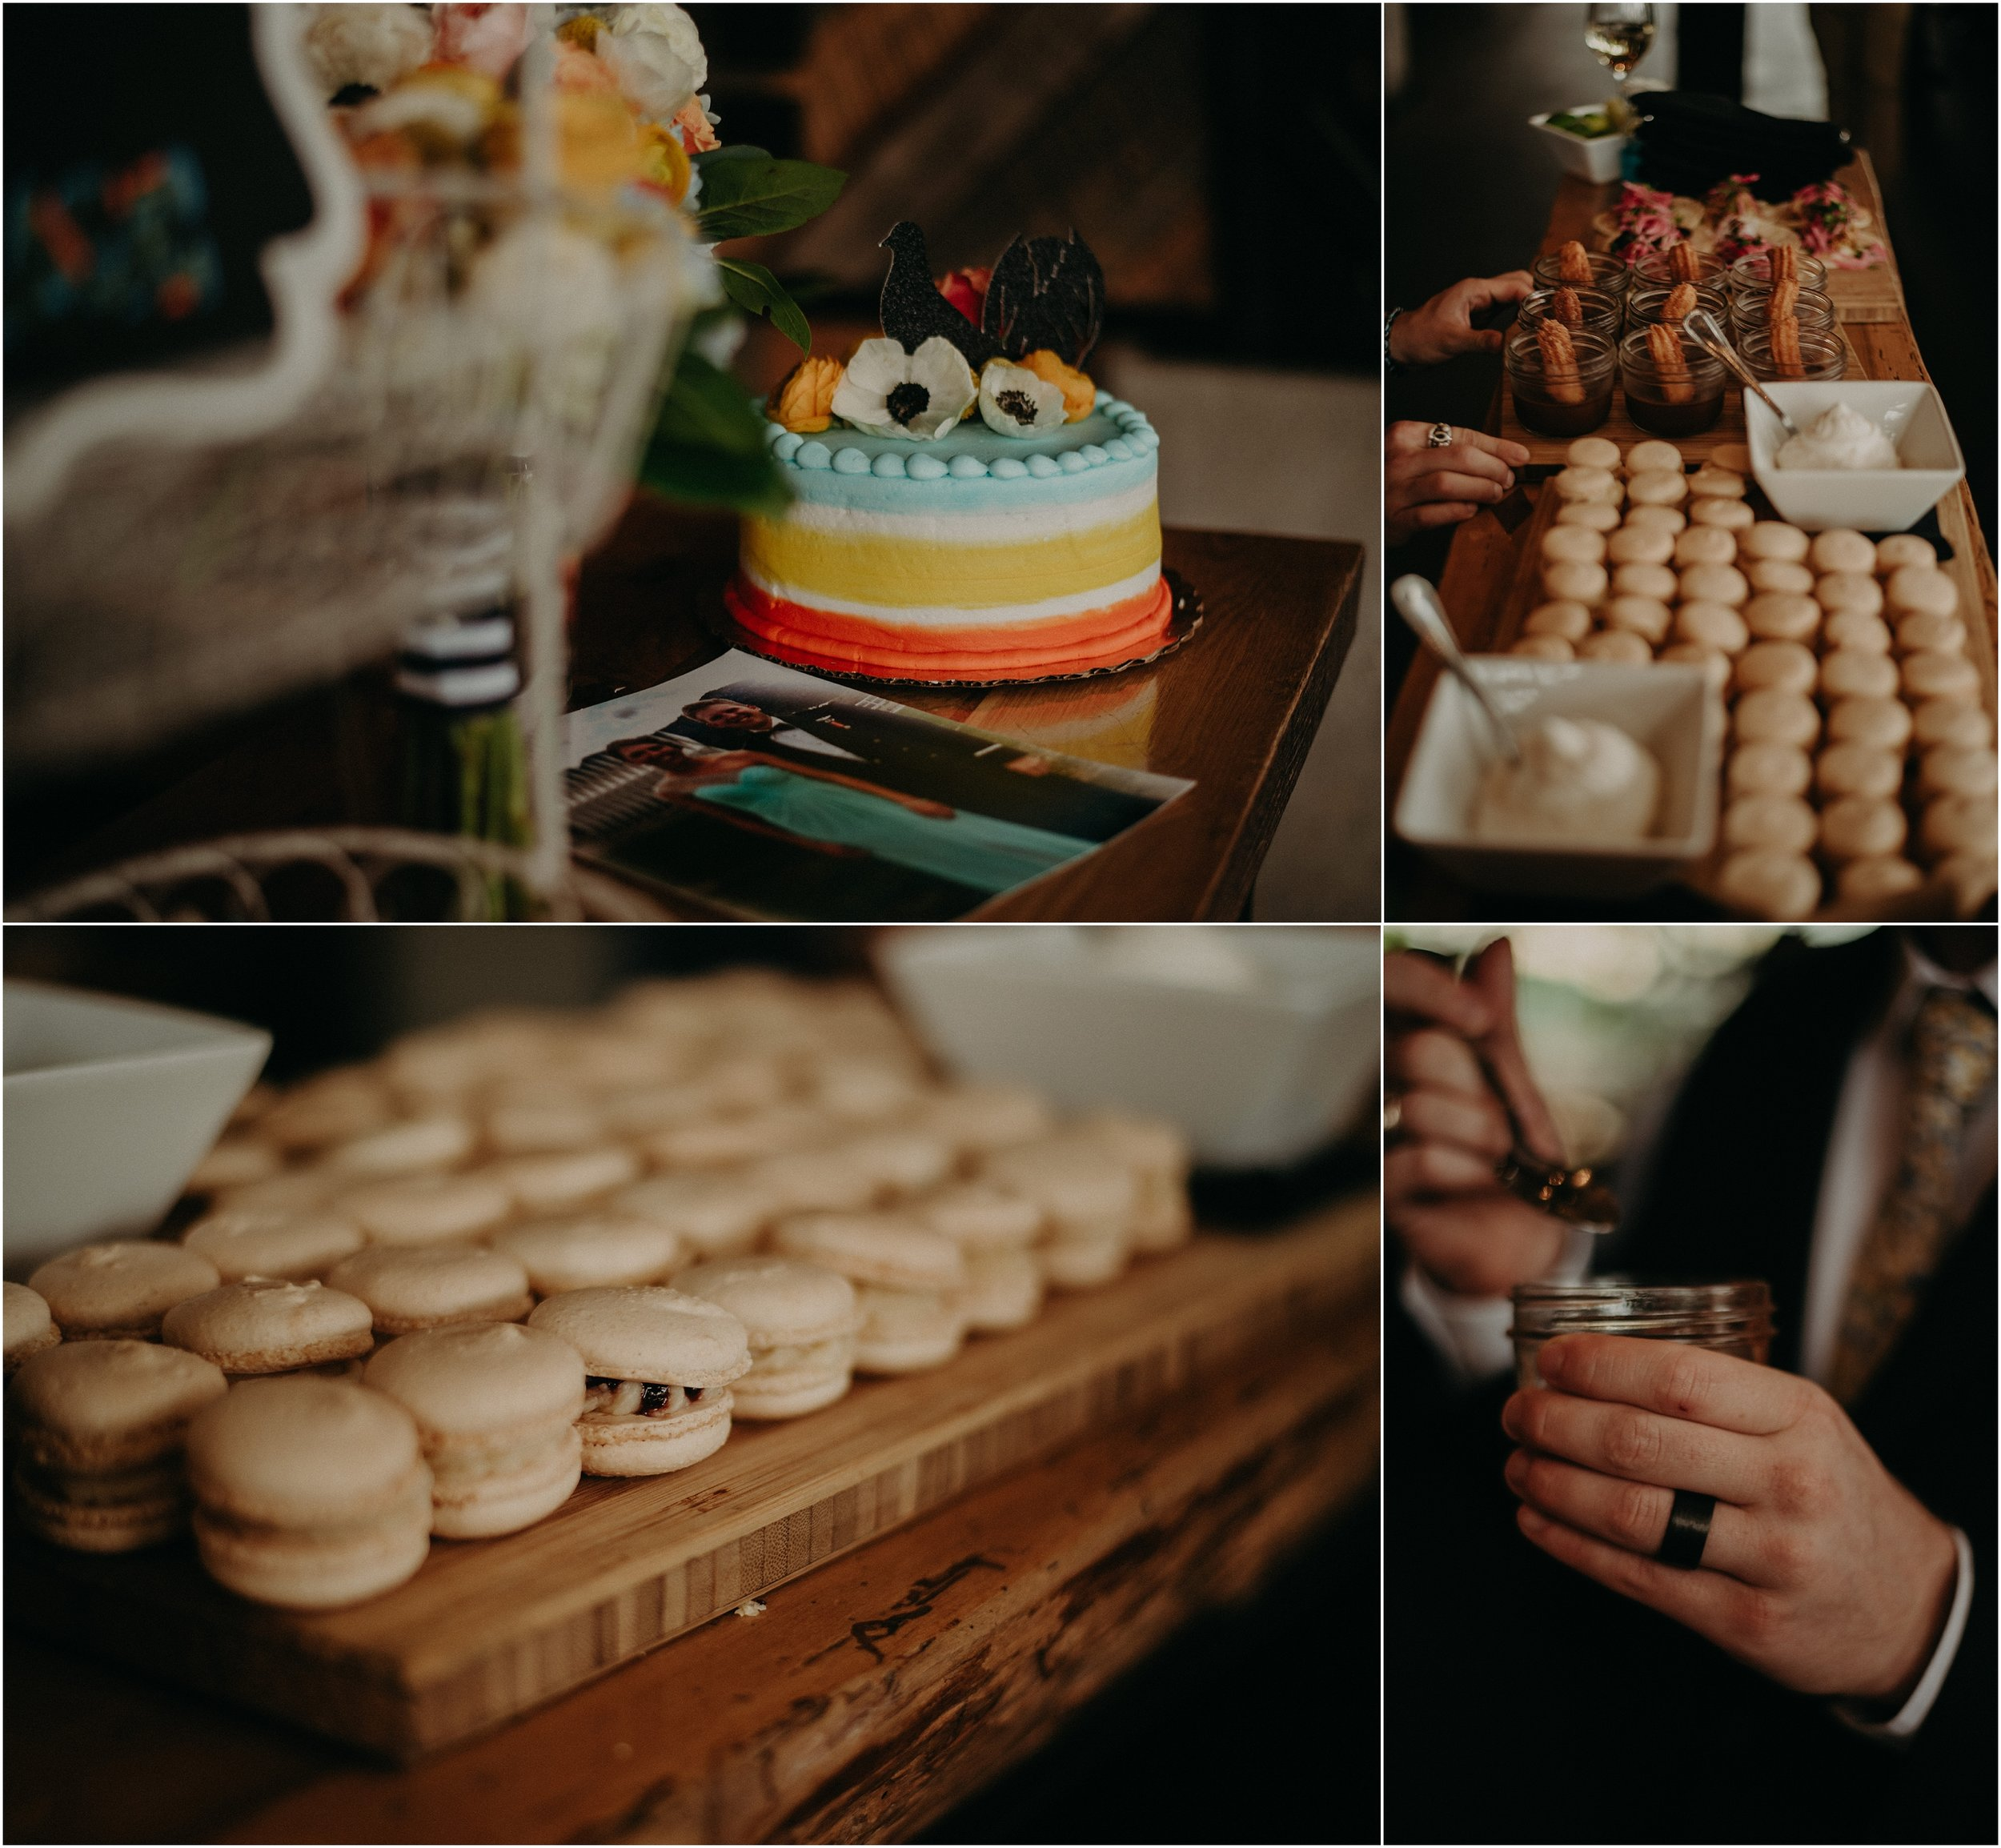 Wedding cake and sweets at the reception